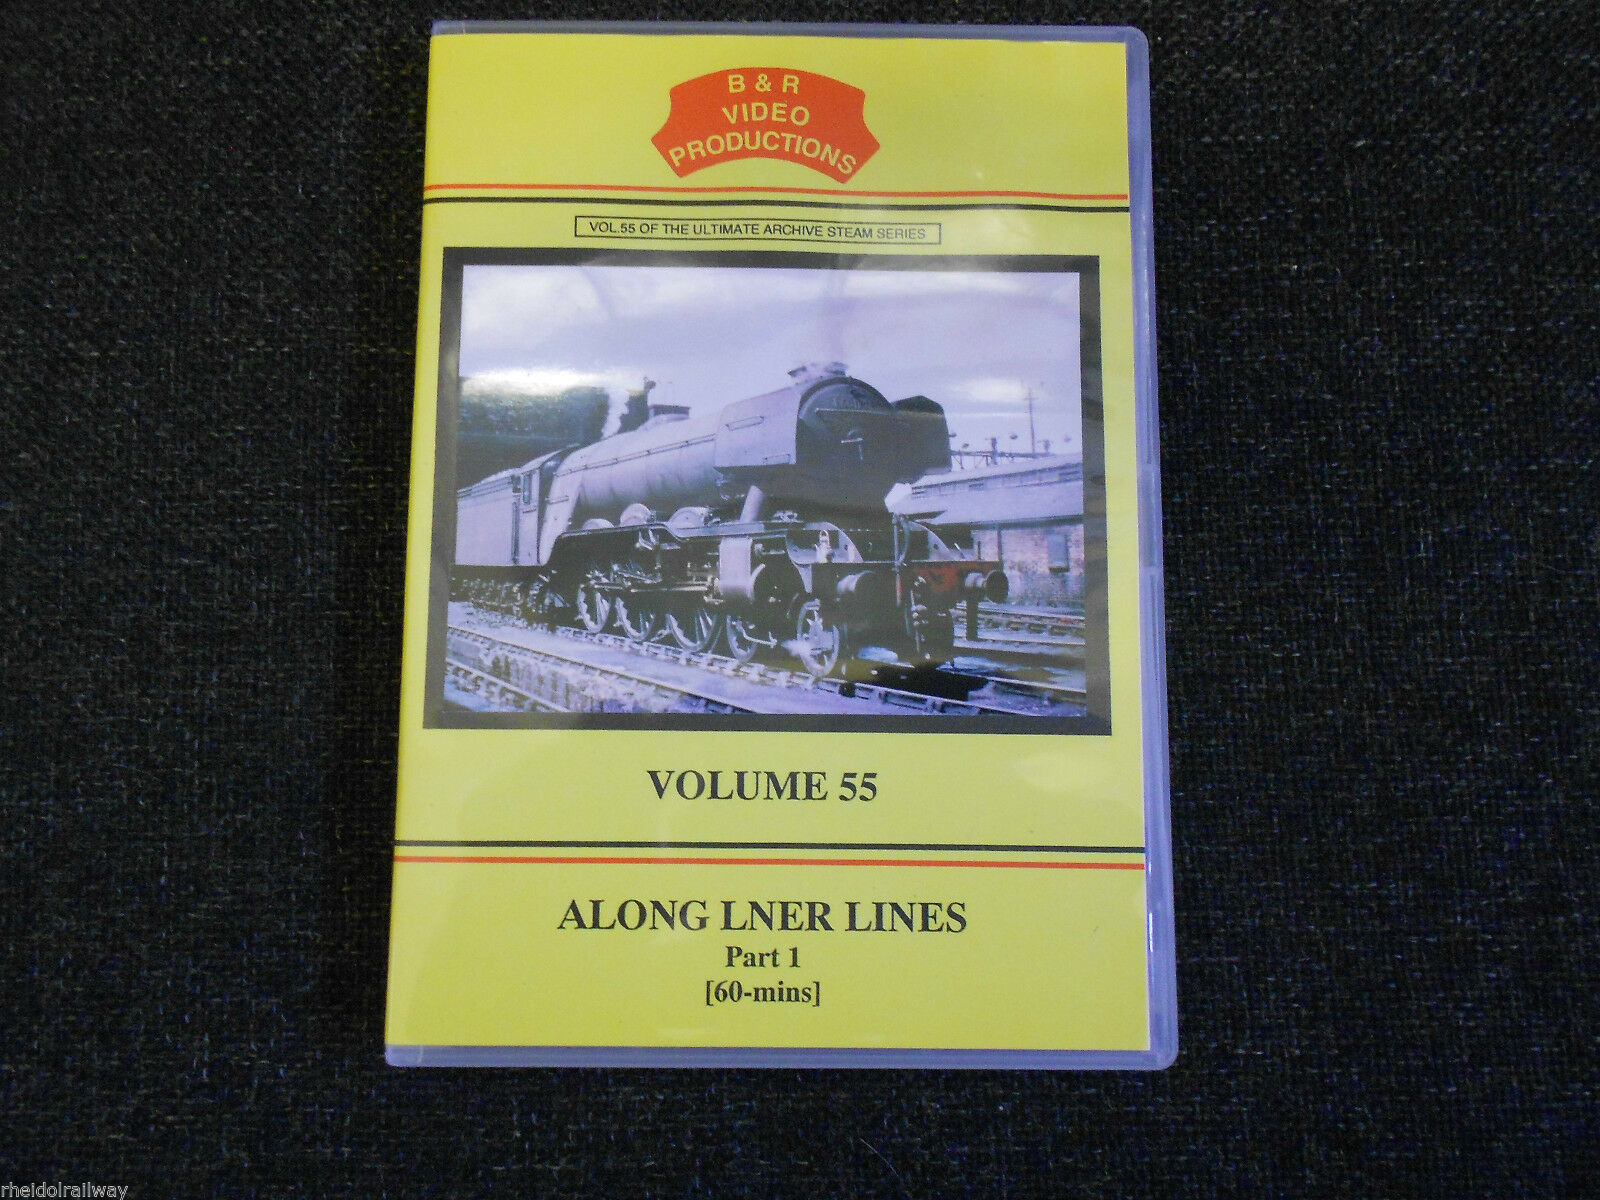 Kings Cross, Newcastle, Northumberland, Along LNER Lines Part 1 B&R Vol 55 DVD. - The Vale of Rheidol Railway